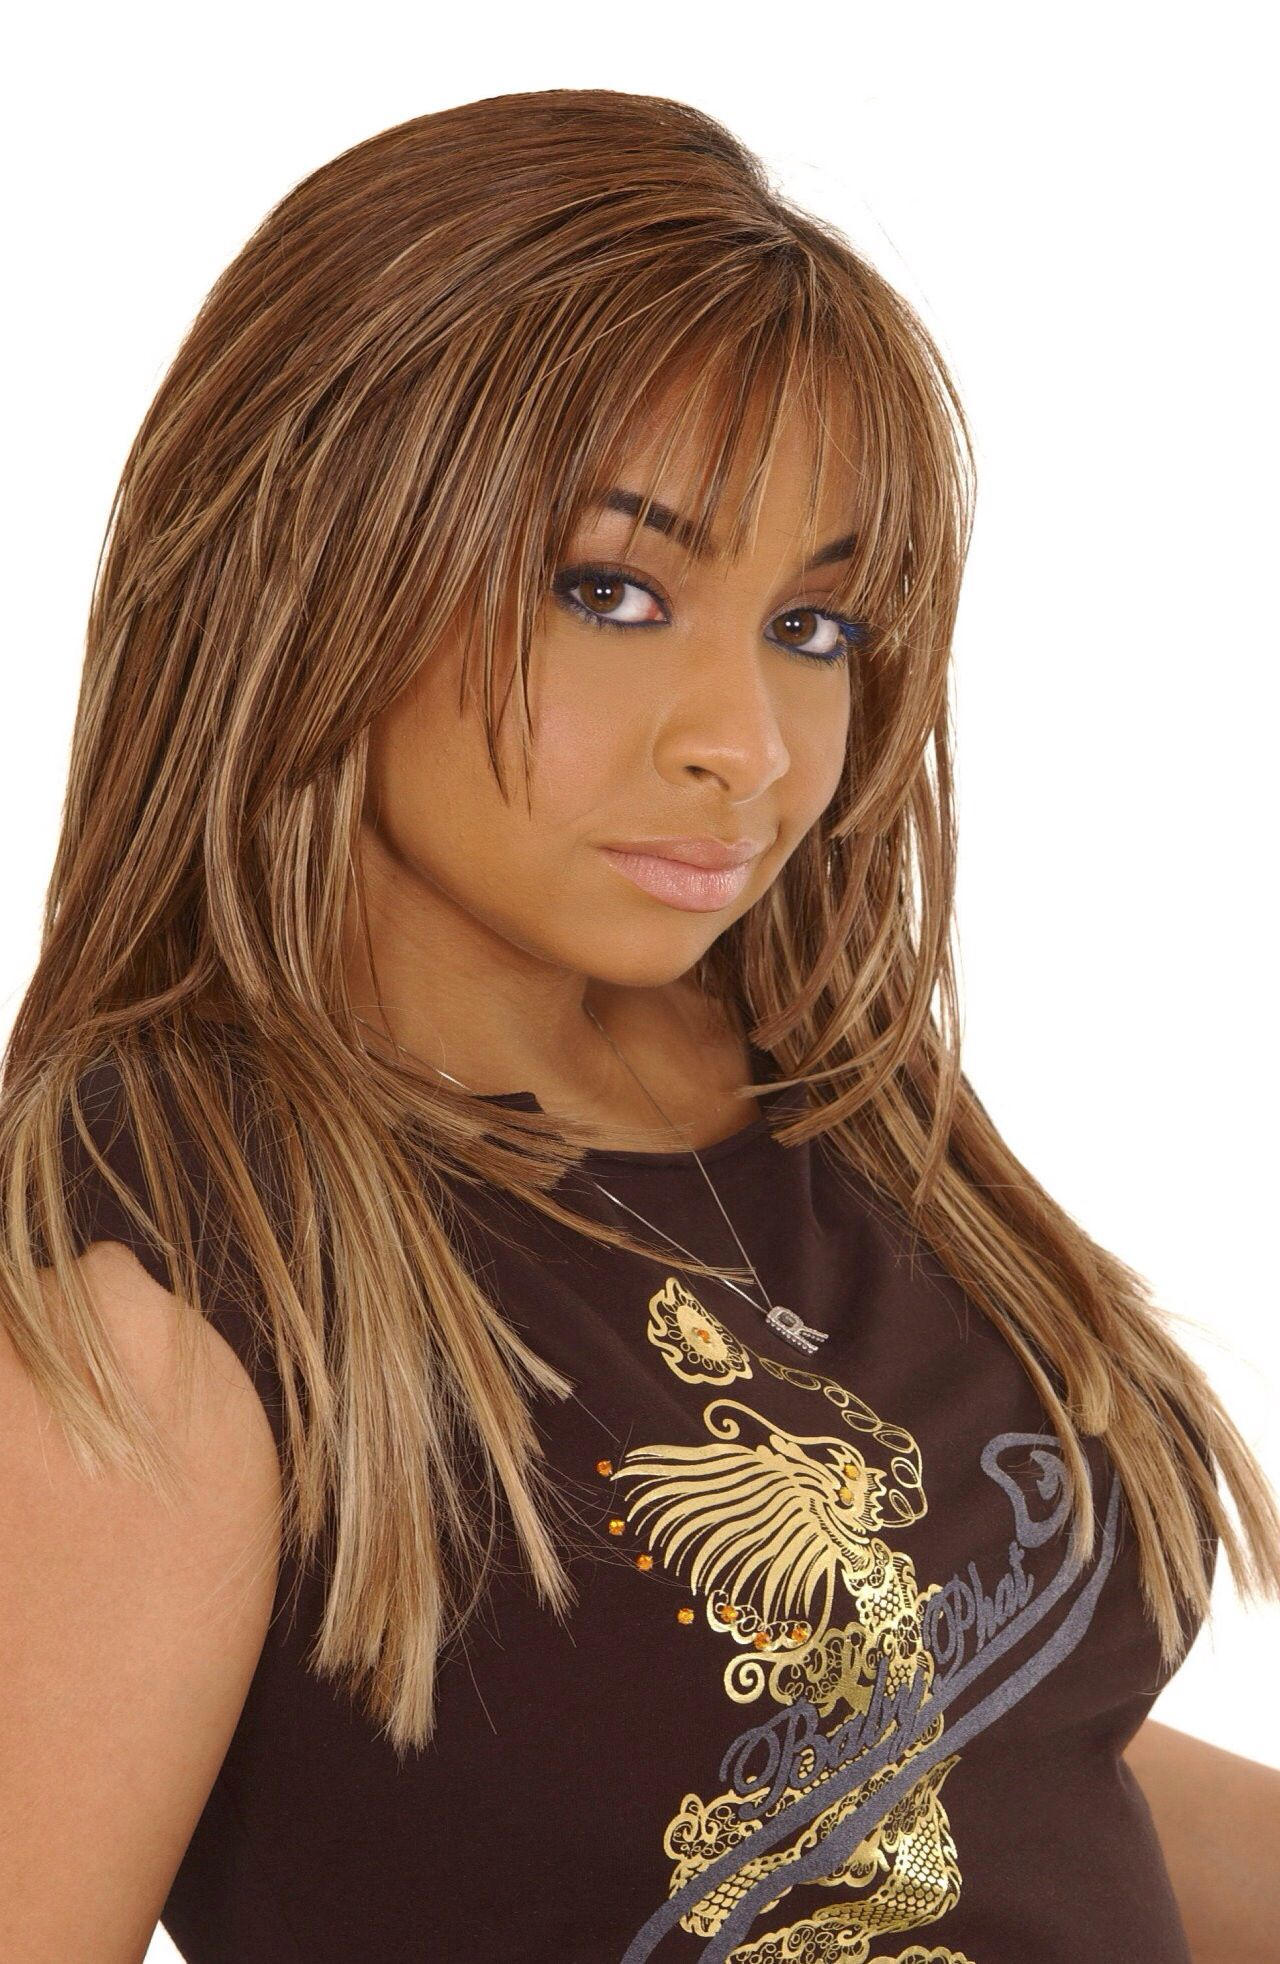 Raven Symone I Enjoy This Picture Xd So Far Looks Like The Best